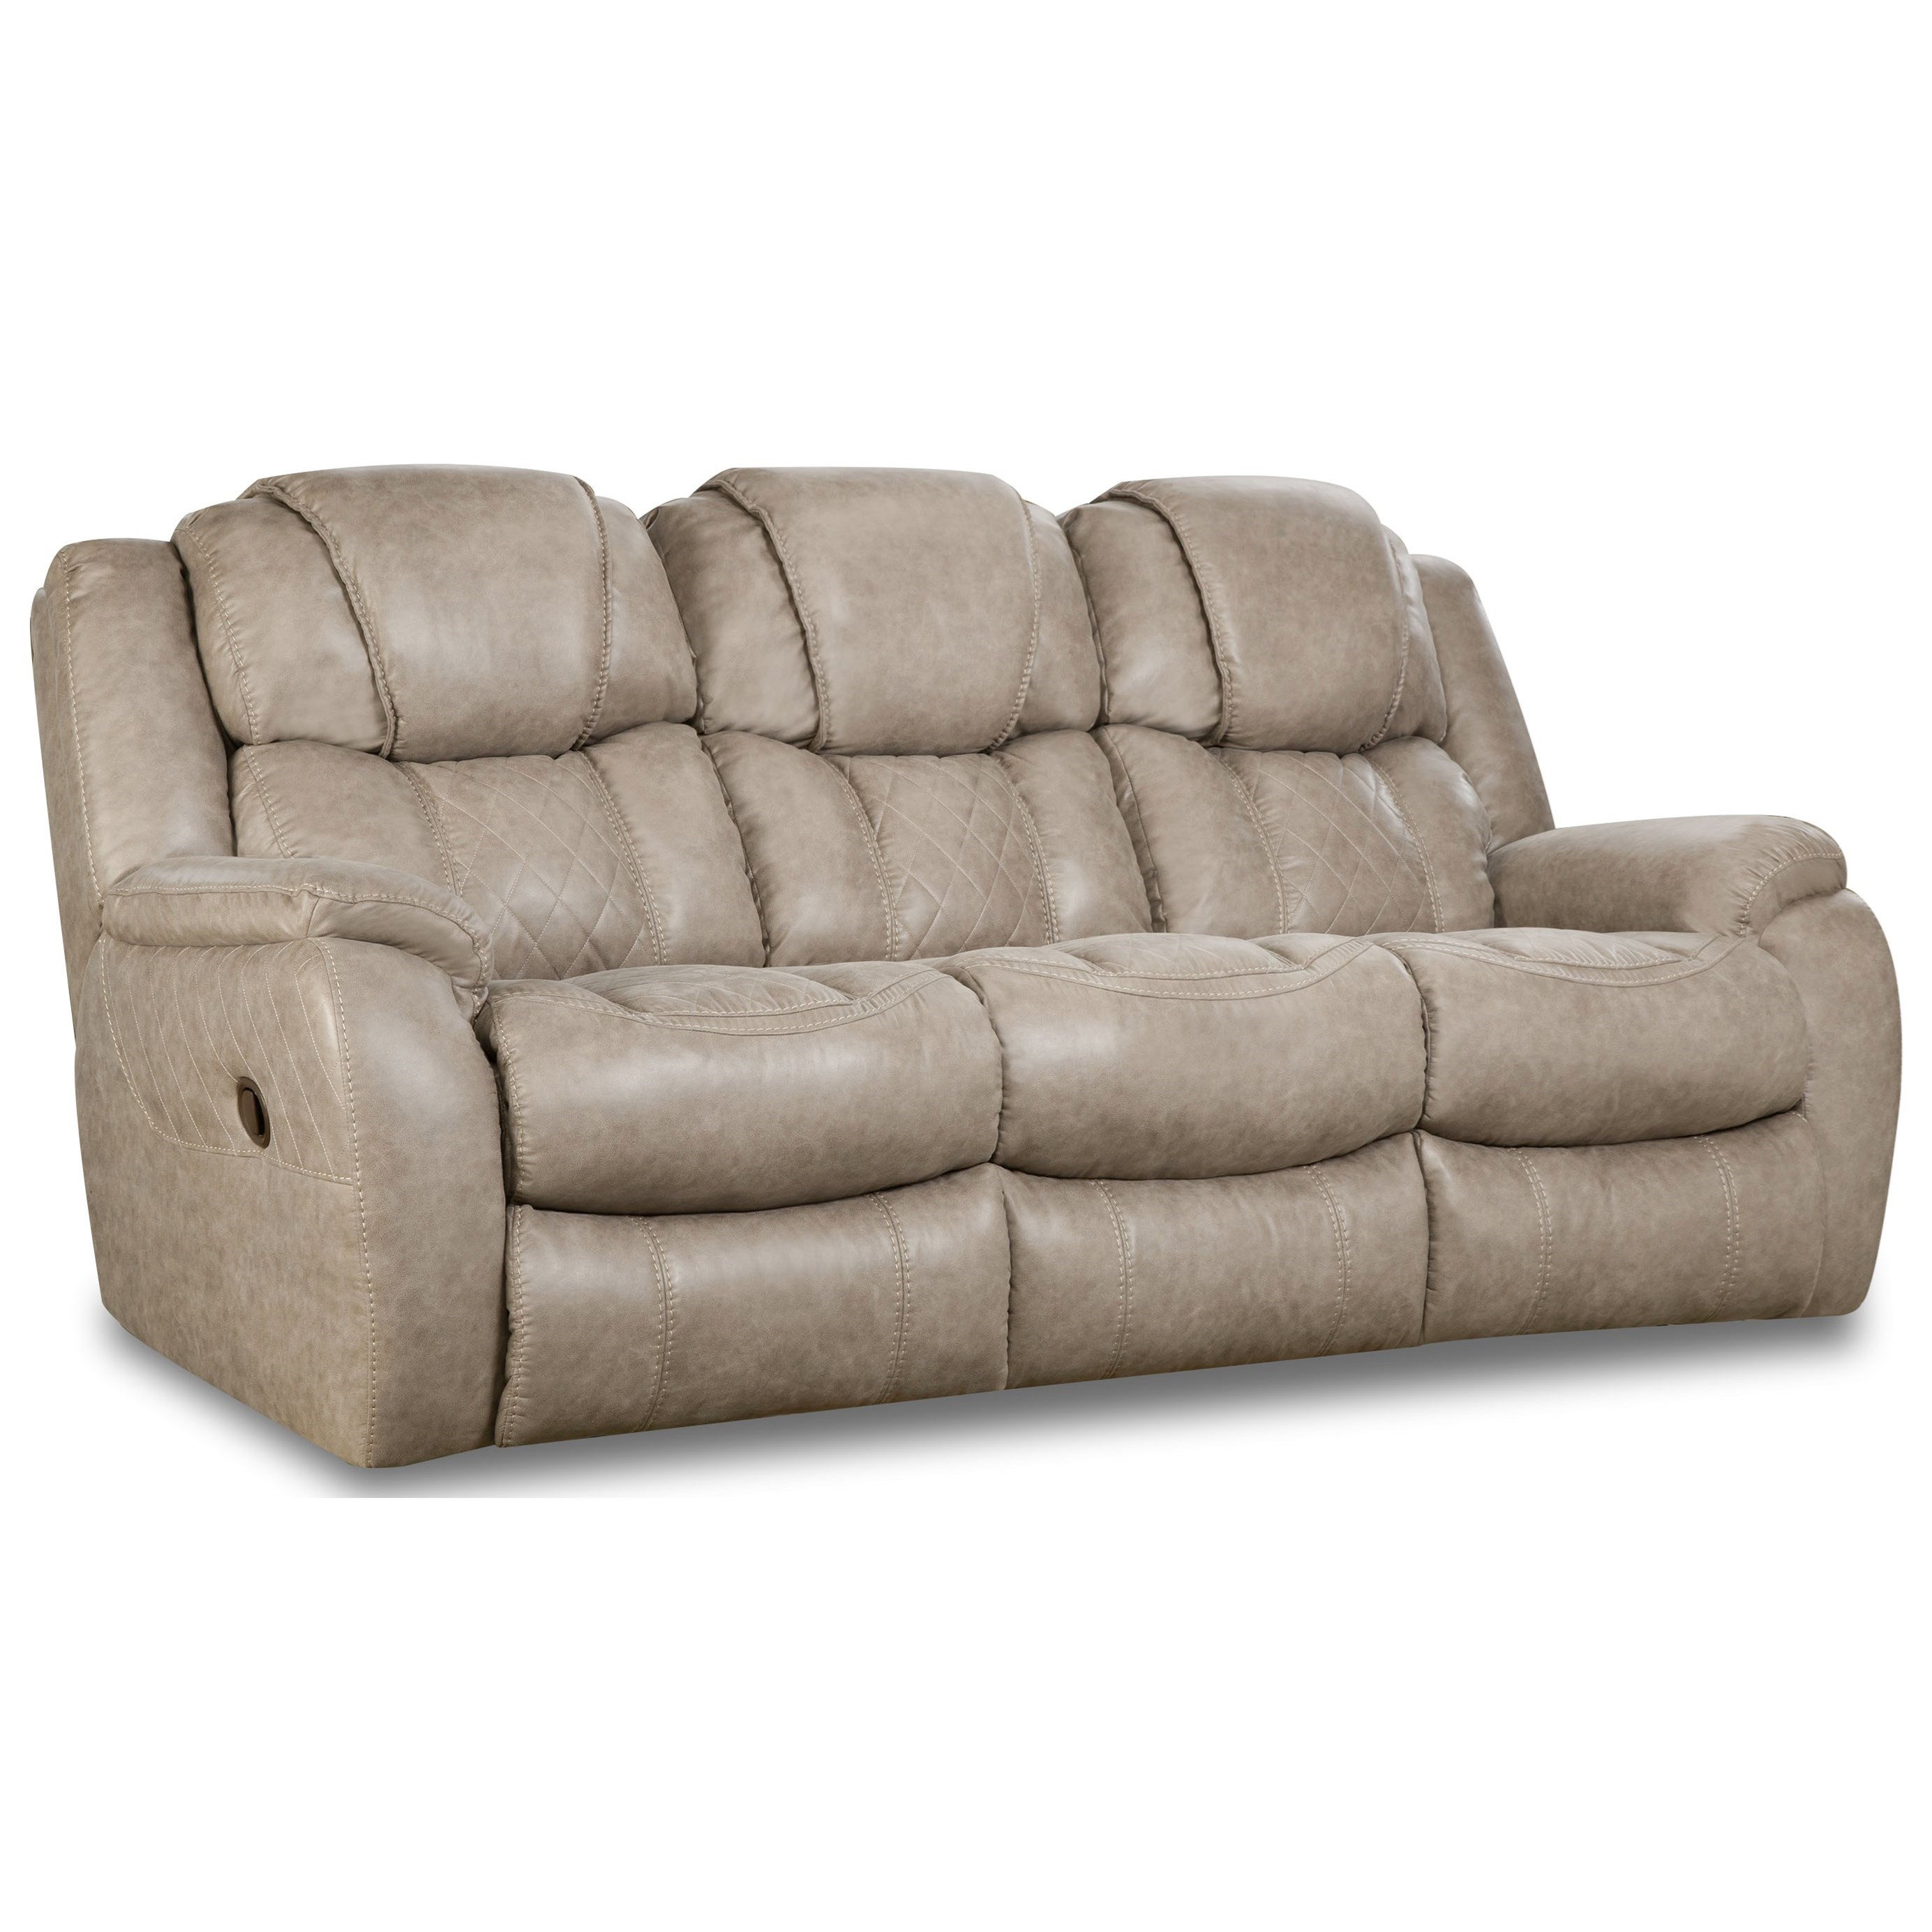 182 Double Reclining Sofa by HomeStretch at Gill Brothers Furniture